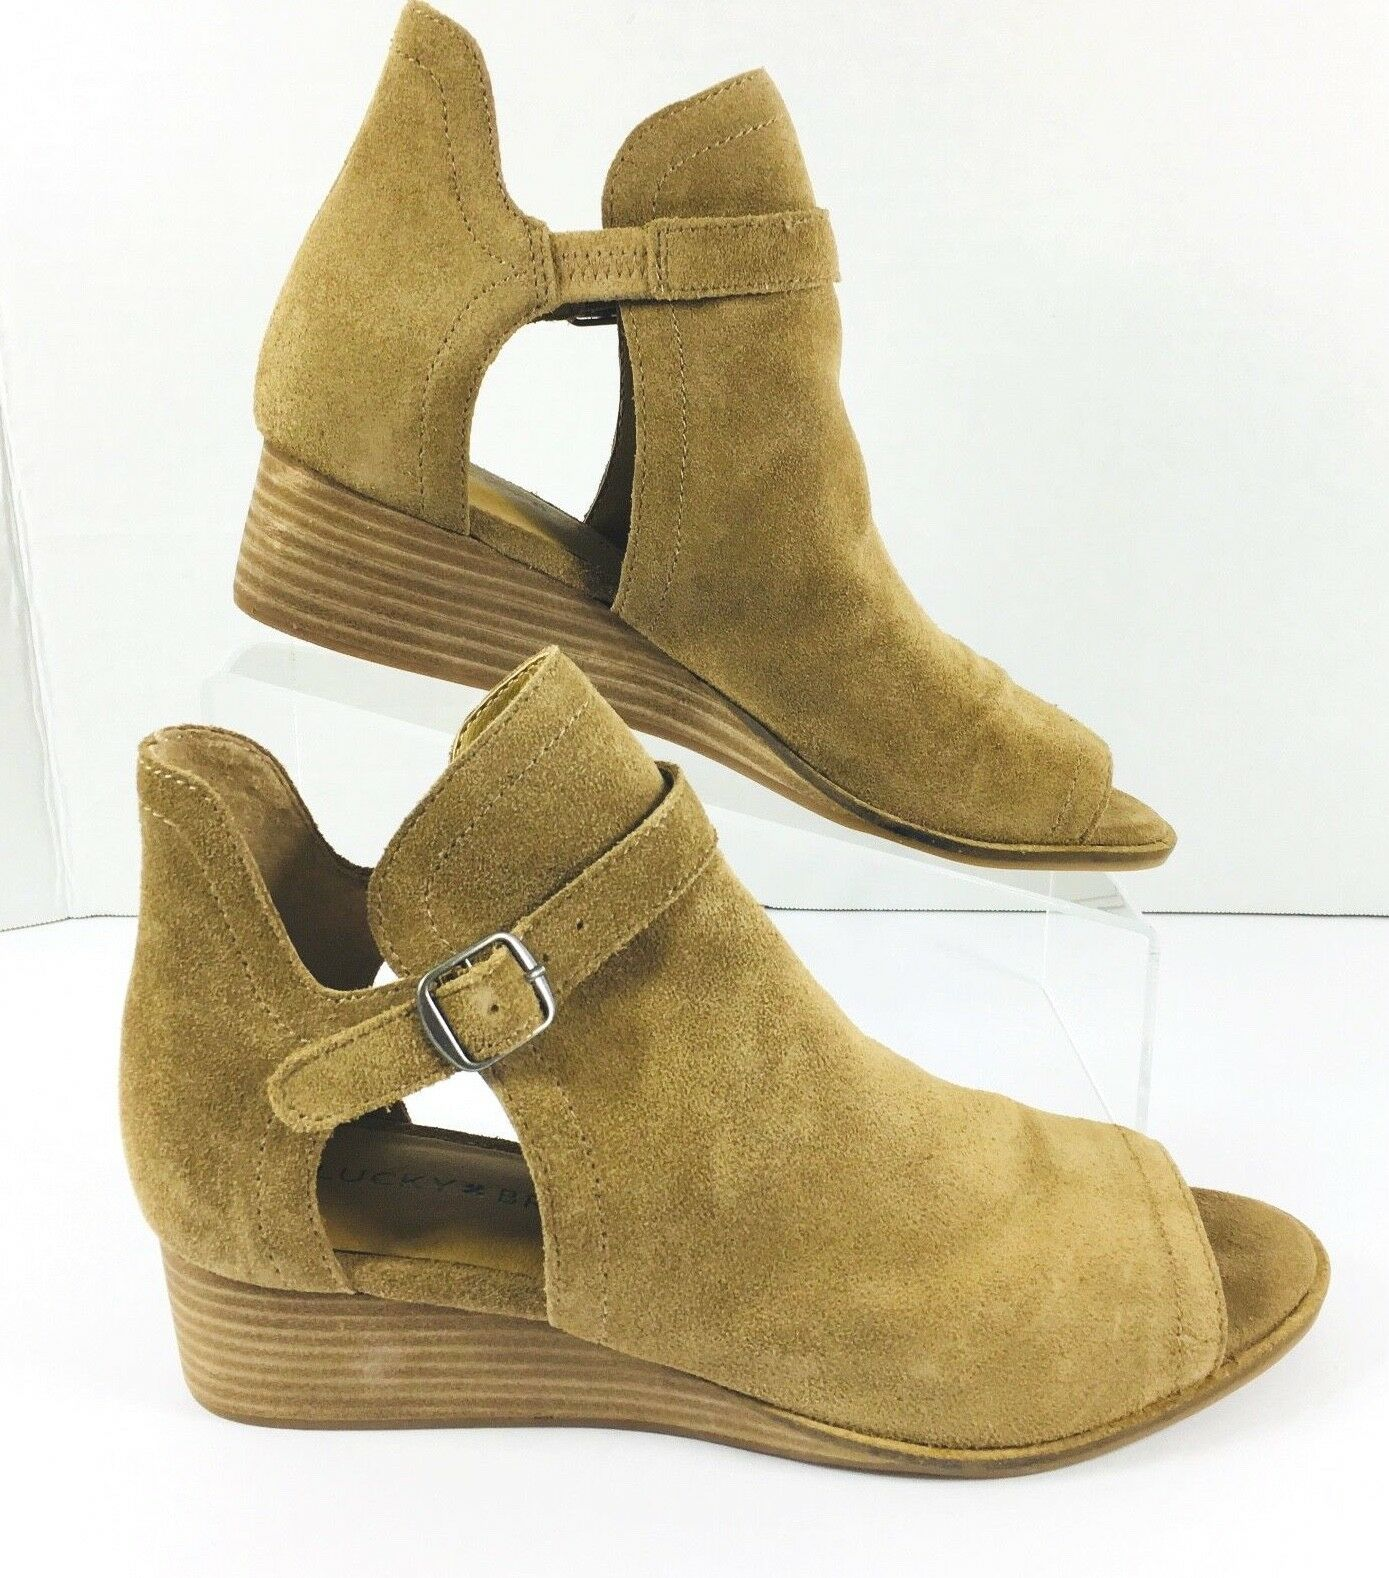 New Lucky Brand damen Sz 7 Reemas Leather Suede Peep Toe Wedge Stiefelie schuhe